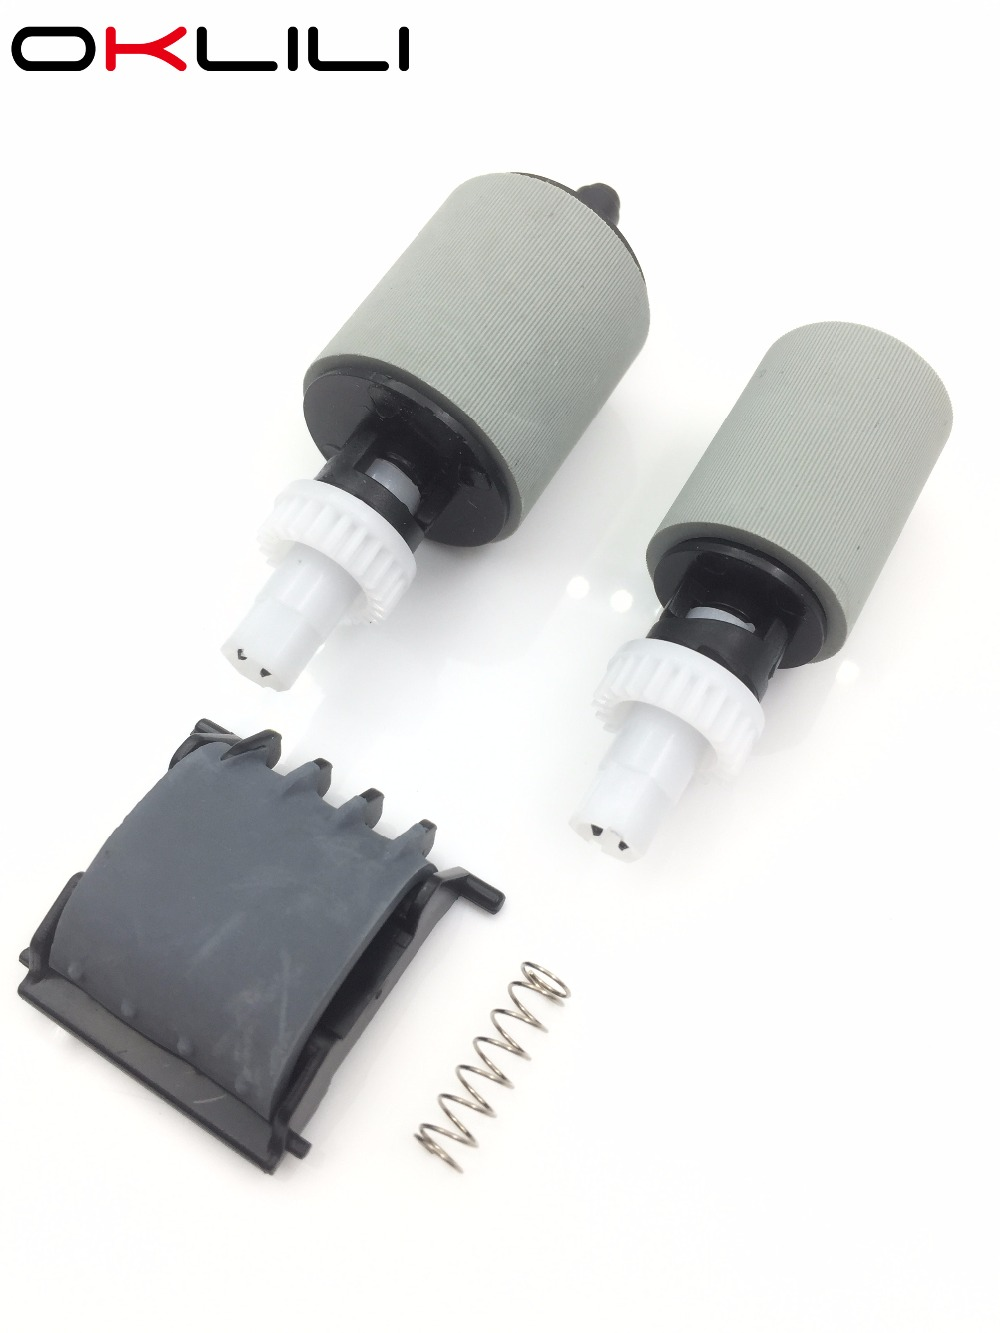 CF288-60016 CF288-60015 A8P79-65001 ADF Feed Pickup Roller Separation Pad Kit for HP Pro 400 M401 M425 M525 M521 M476 M570 M521